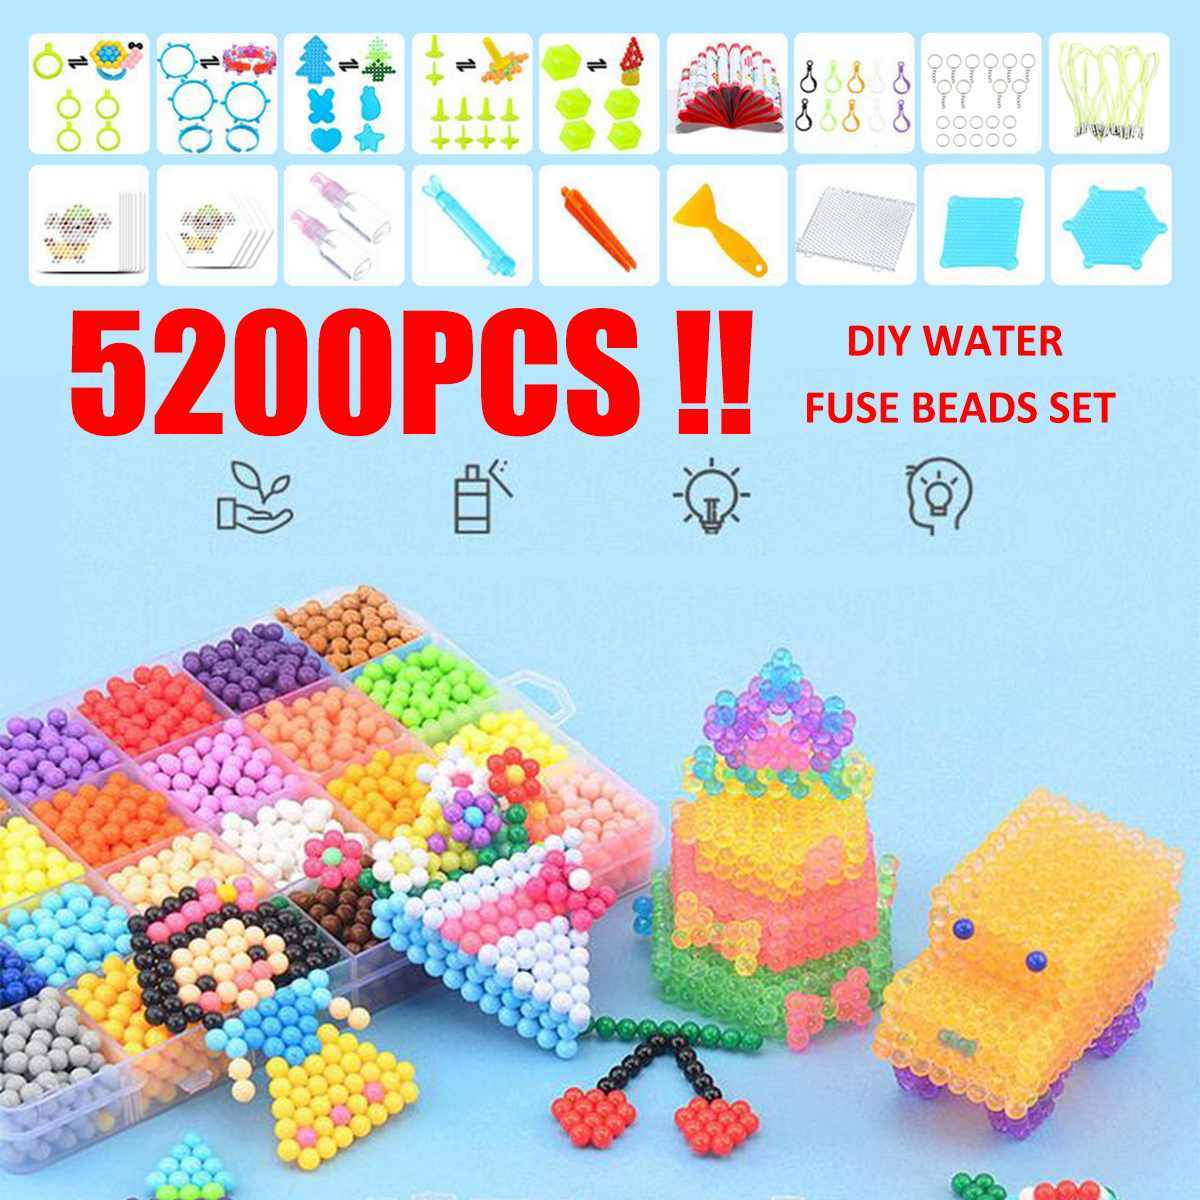 8000pcs Magic Puzzle Toys Bead Set DIY Craft Animal Handmade Sticky Beads Educational Learning Toys Kids Good Gifts